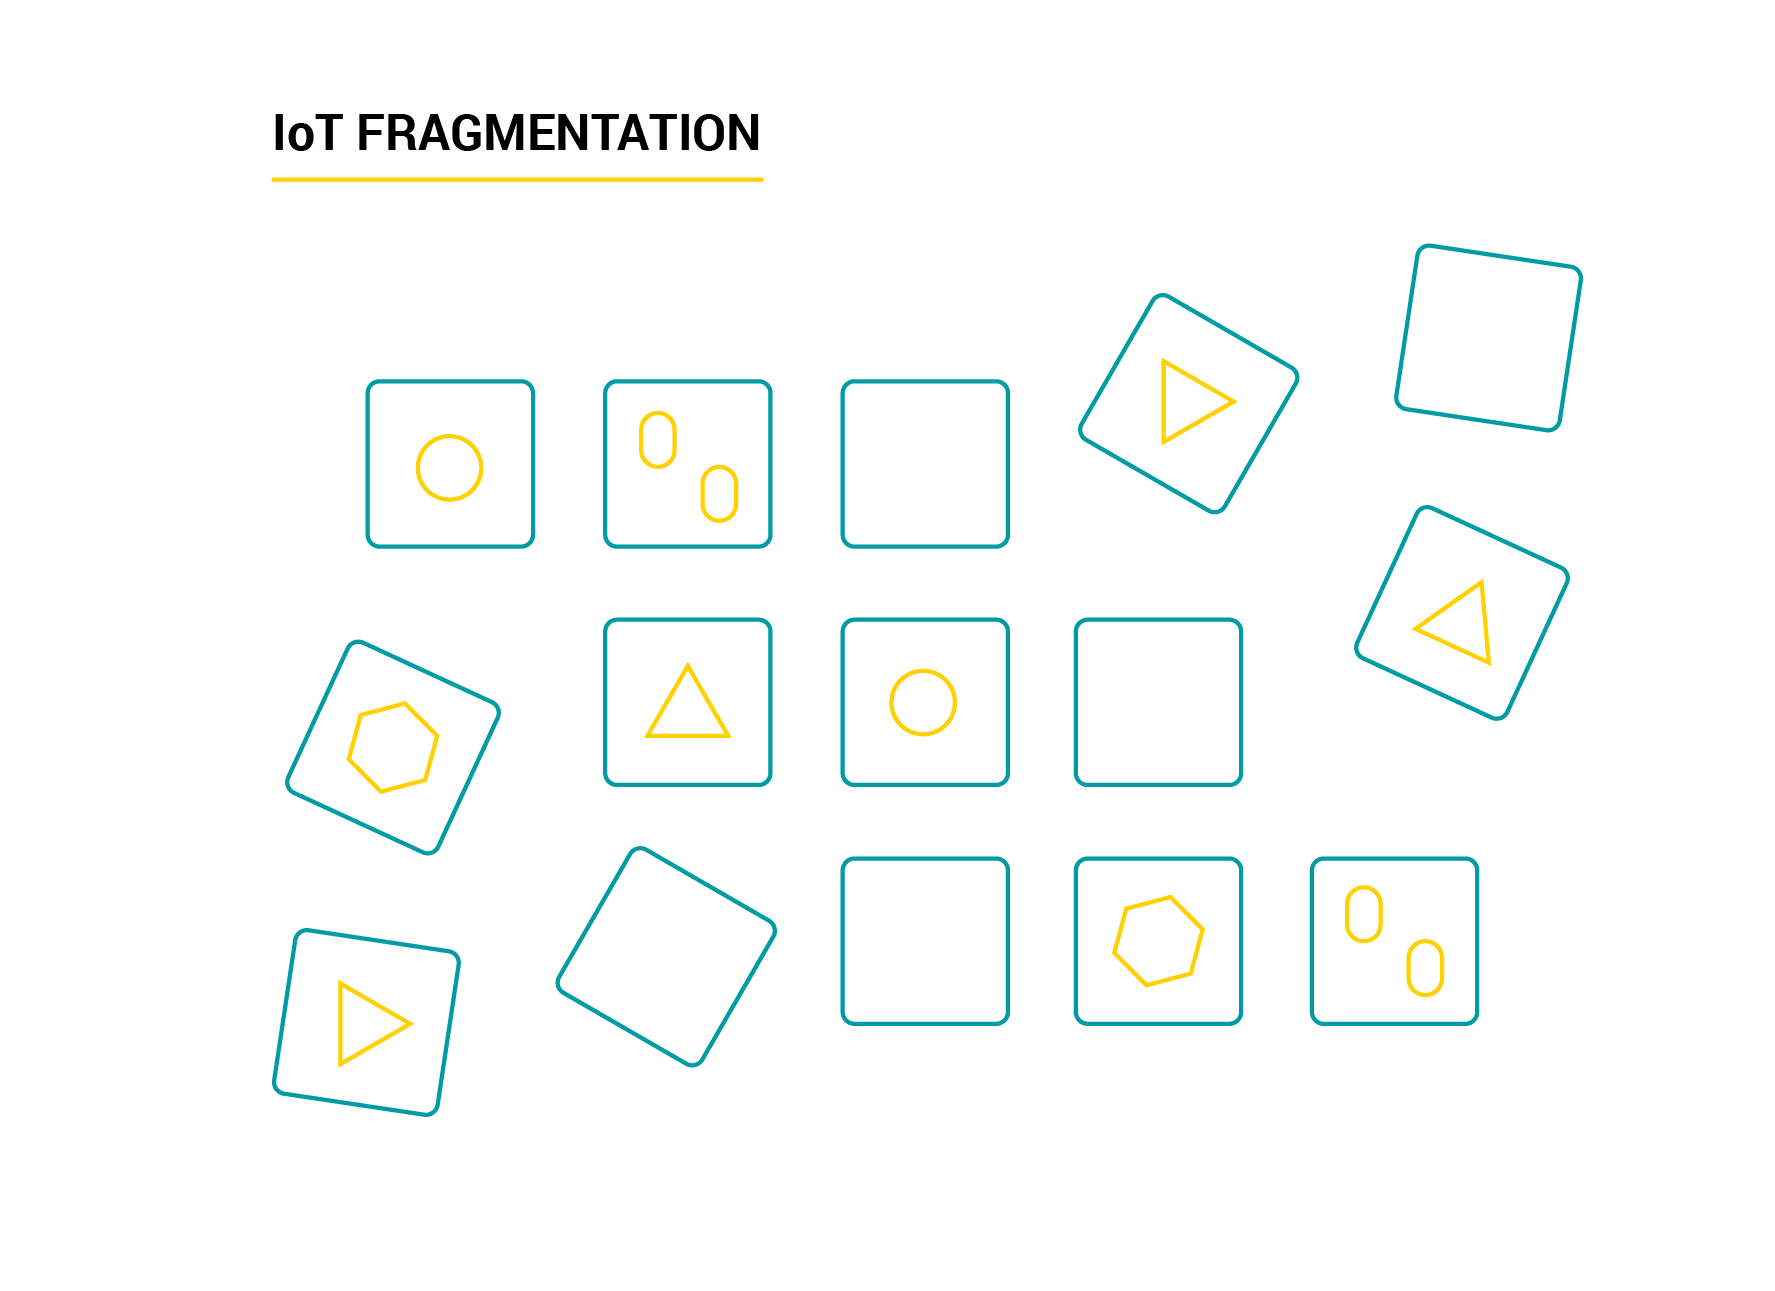 IoT fragmentation